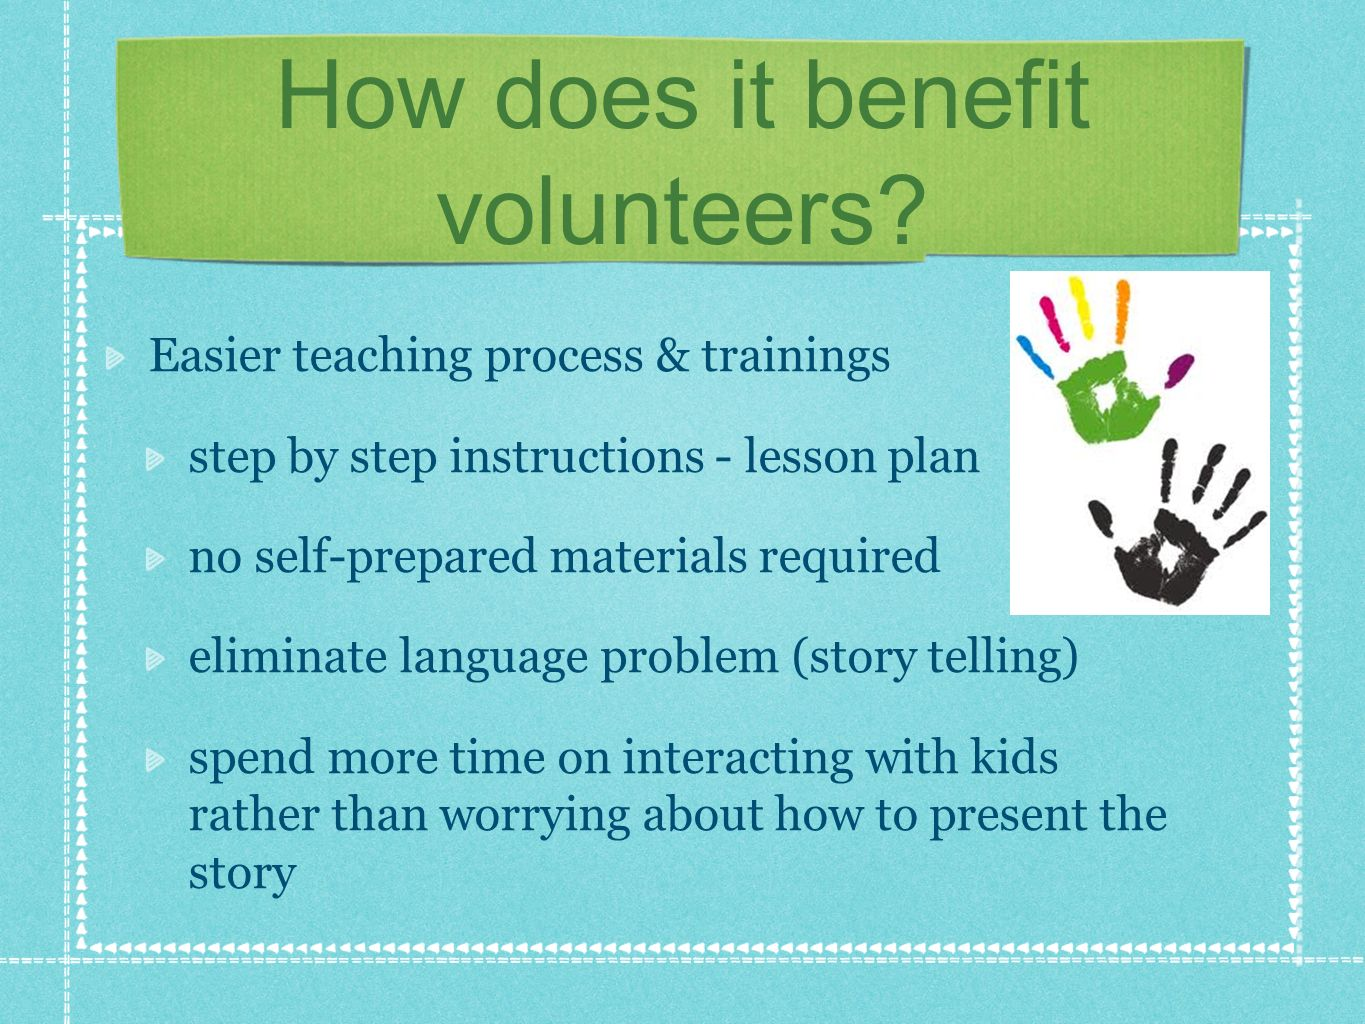 How does it benefit volunteers